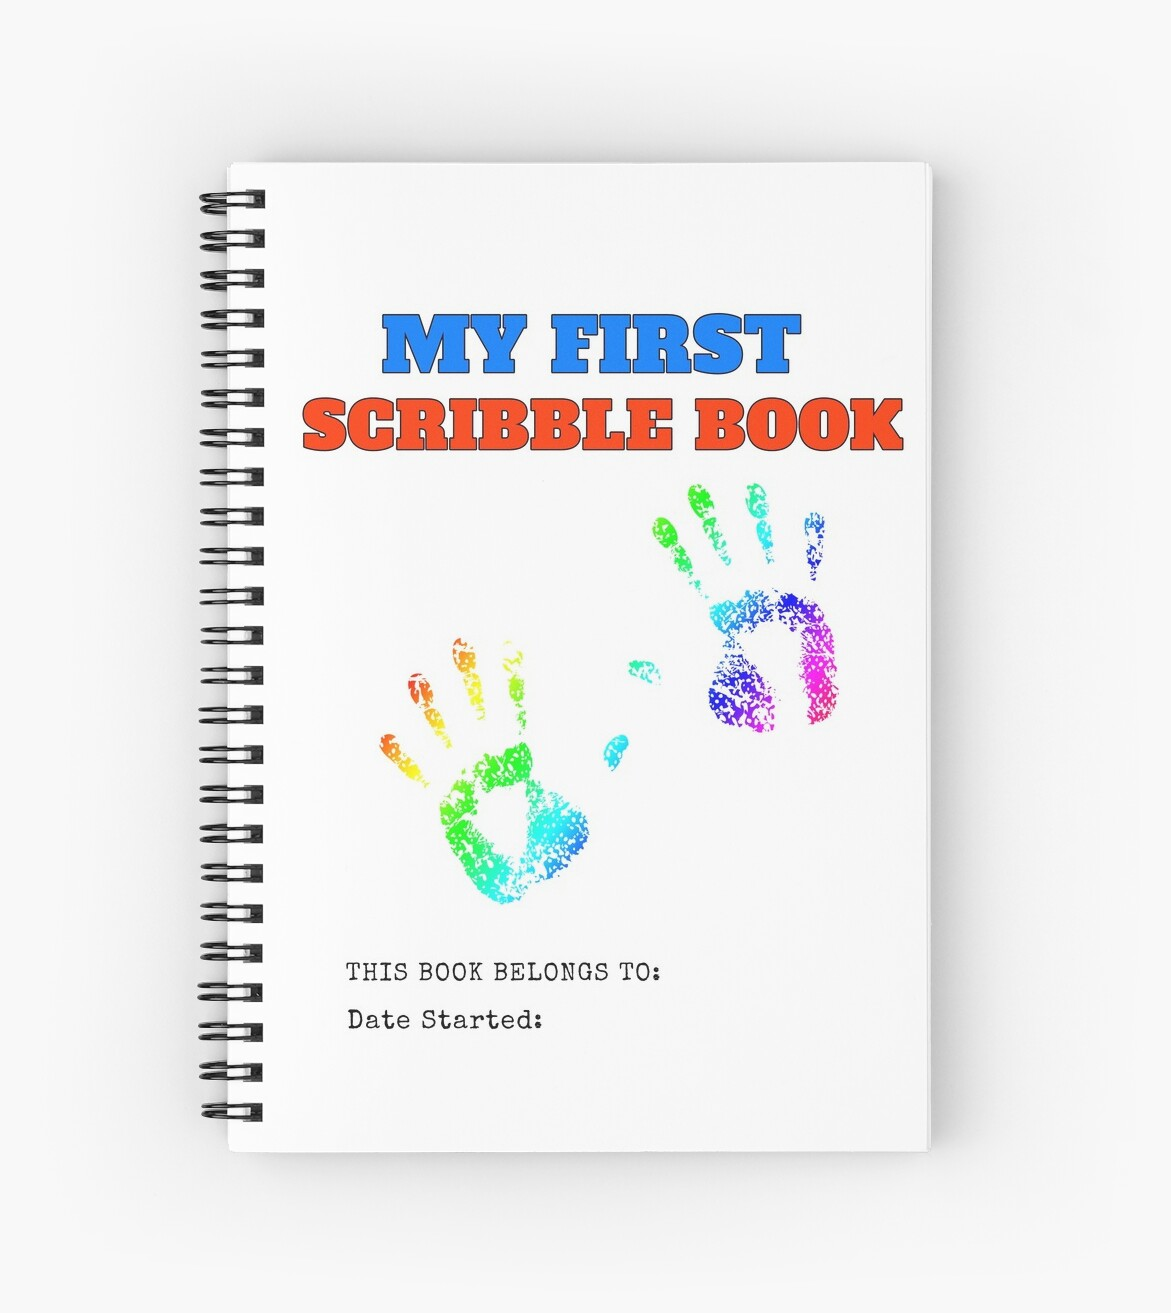 My First Scribble Book  by GypsyDreamer